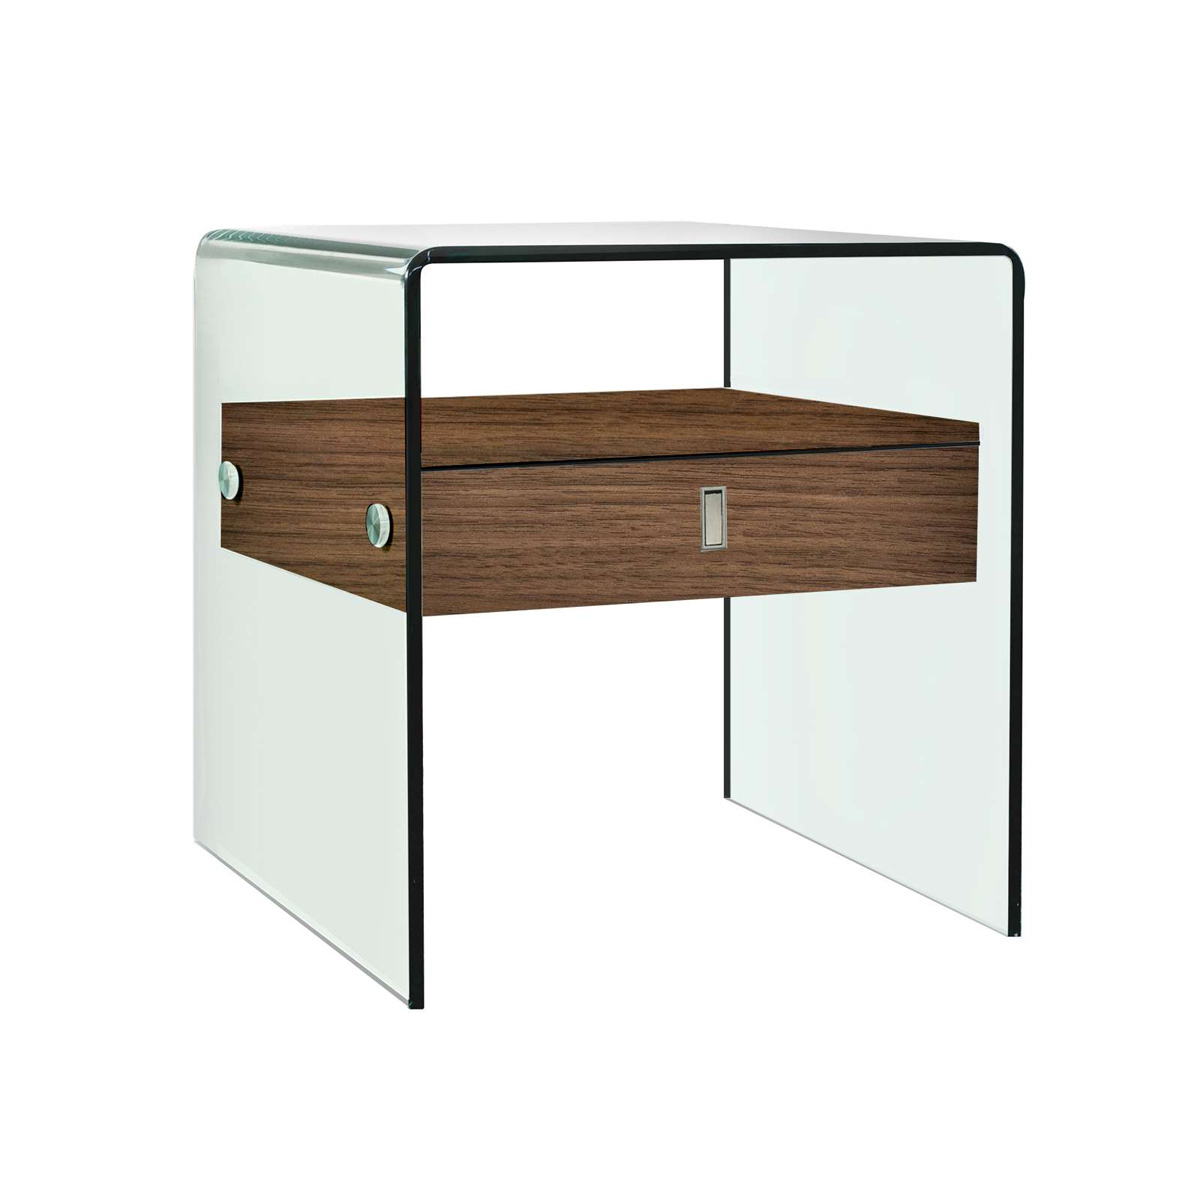 Bari CB-J052, end table from Casabianca